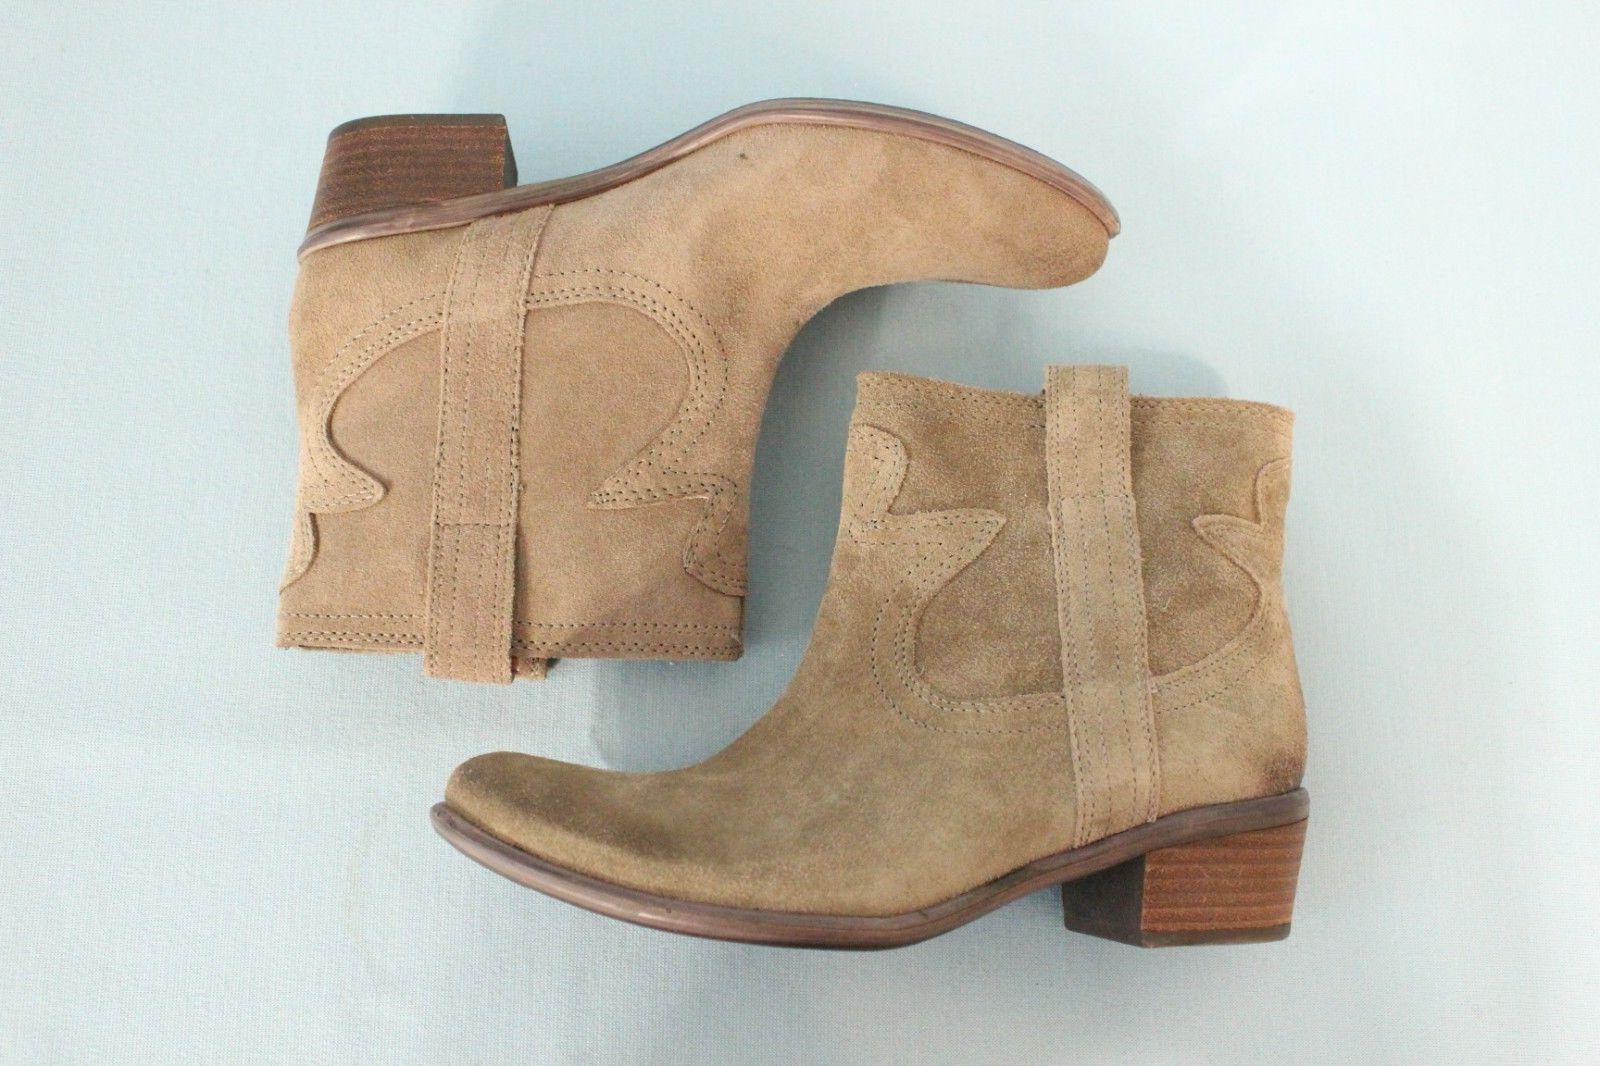 Lucky Ankle Boots Tan Size 7.5M NEW